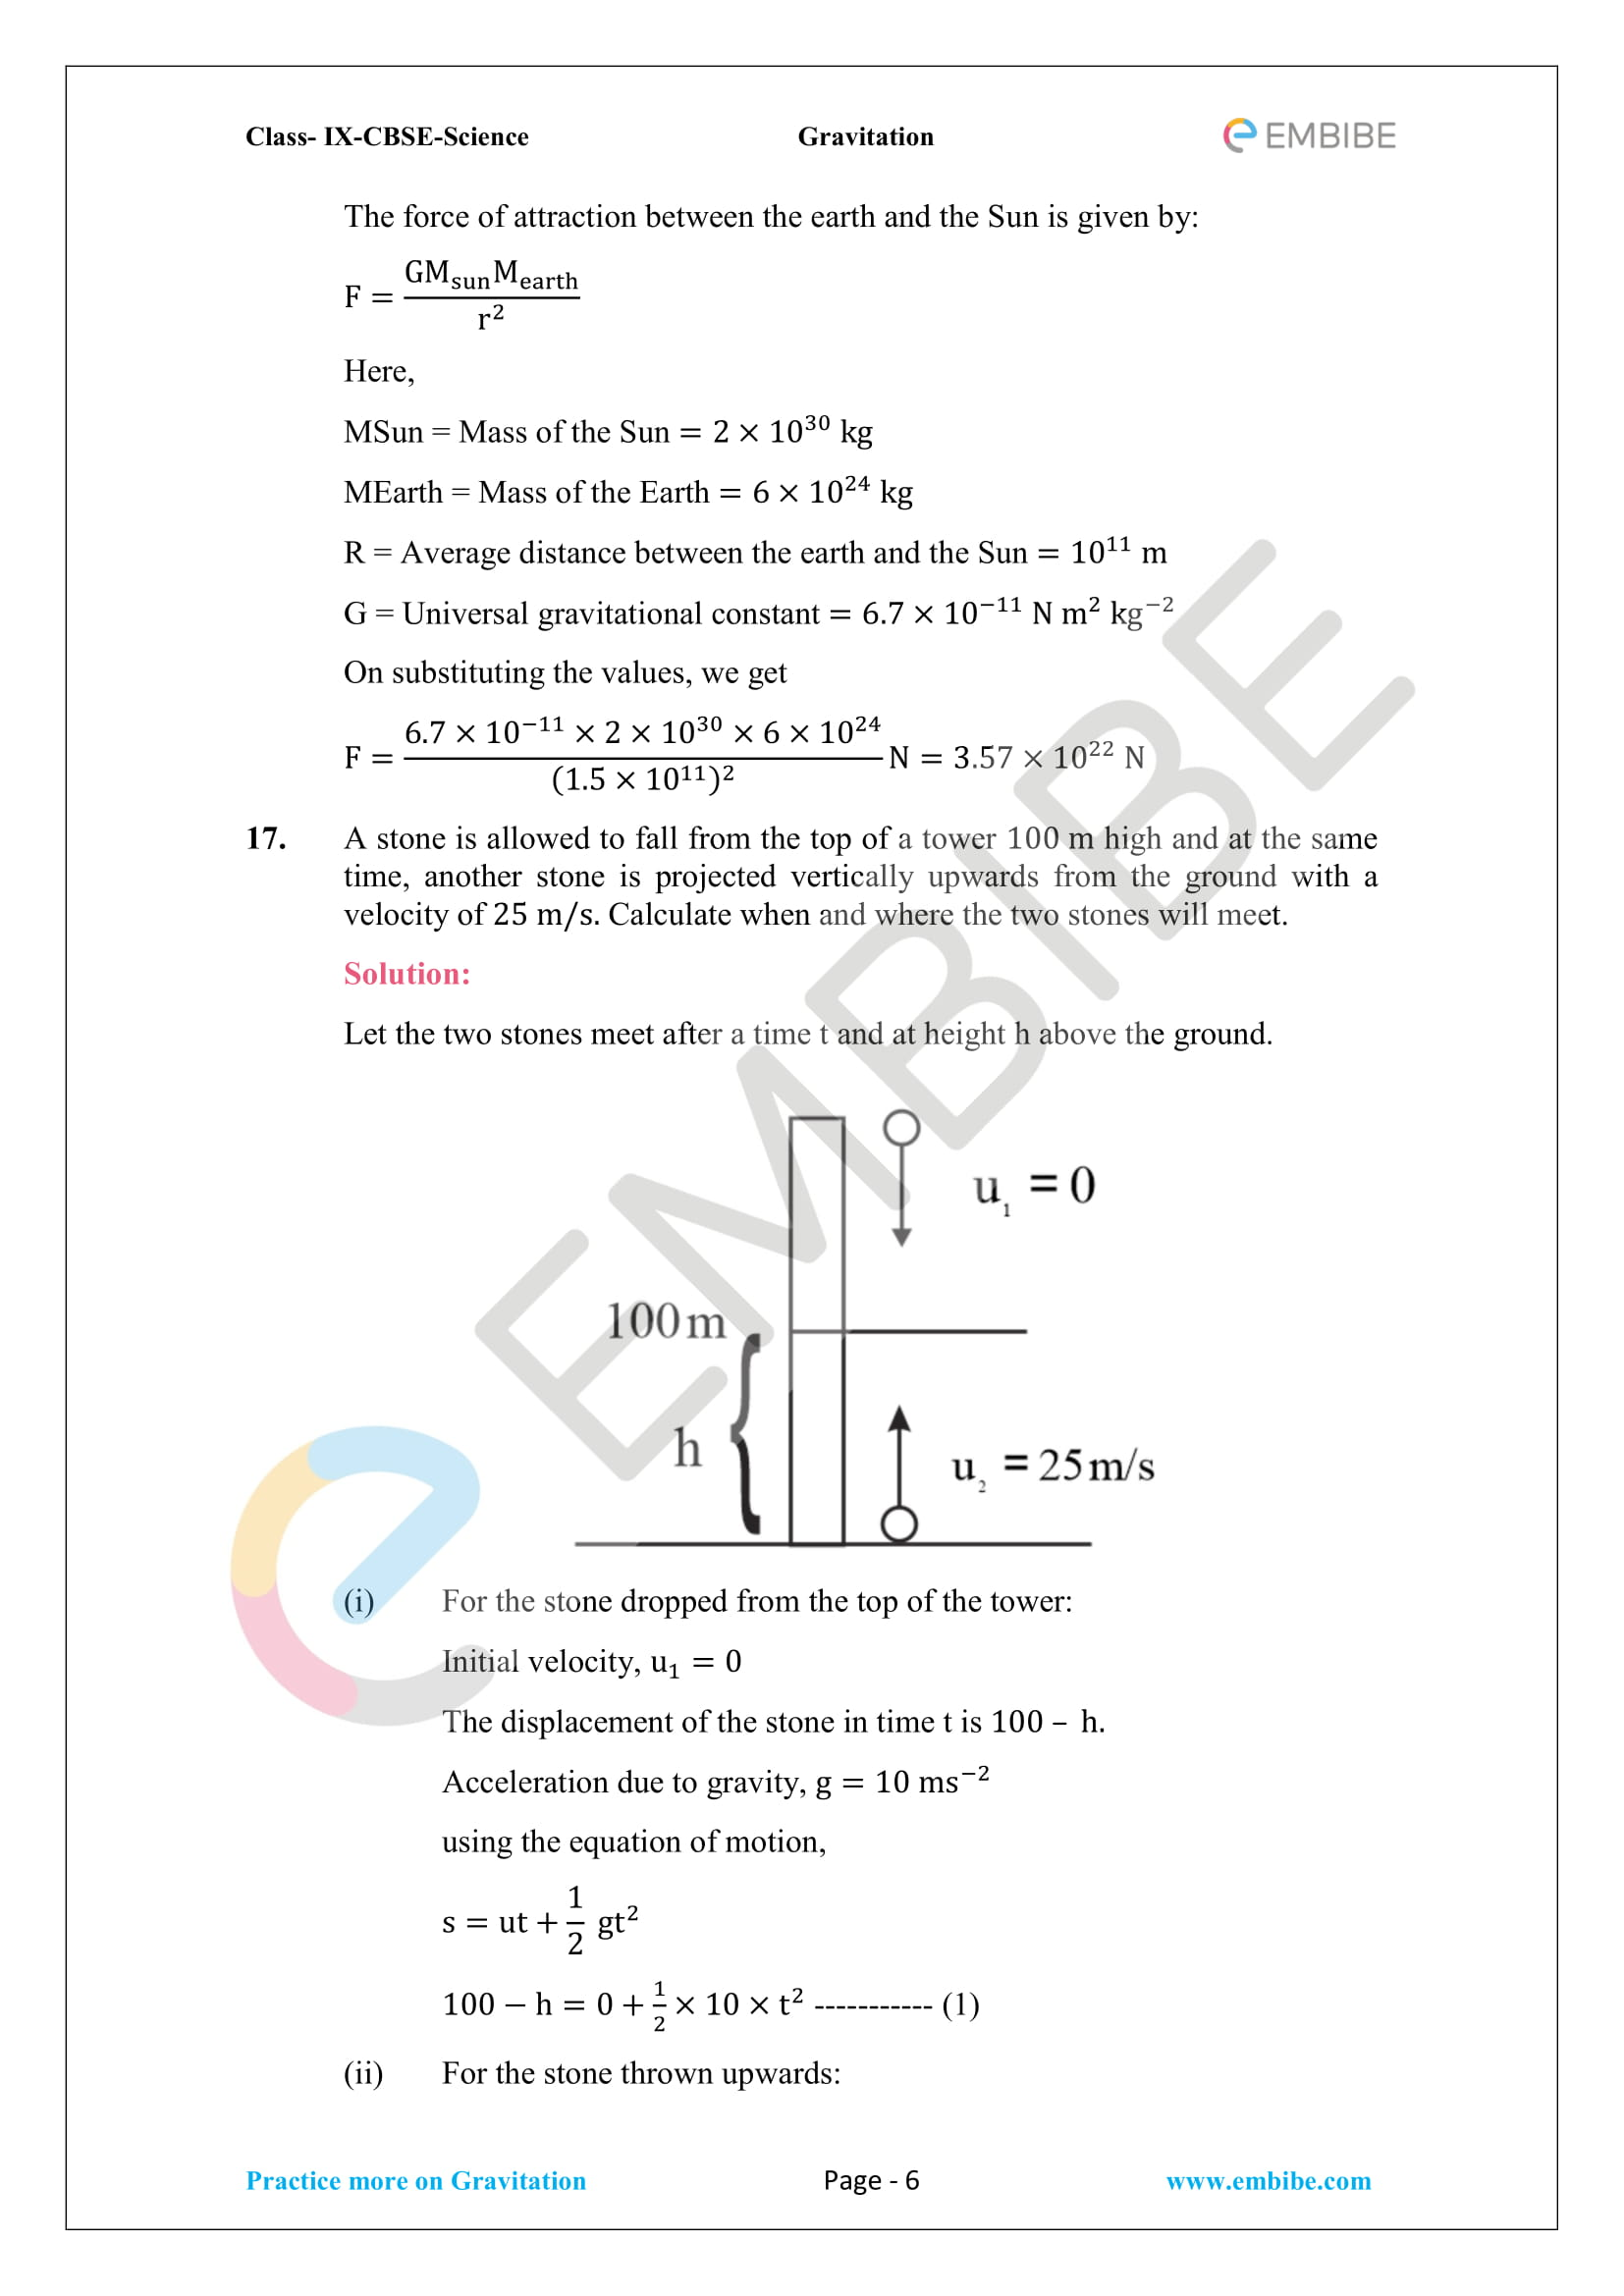 CBSE NCERT Solutions For Class 9 Science Chapter 10 – Gravitation - 6